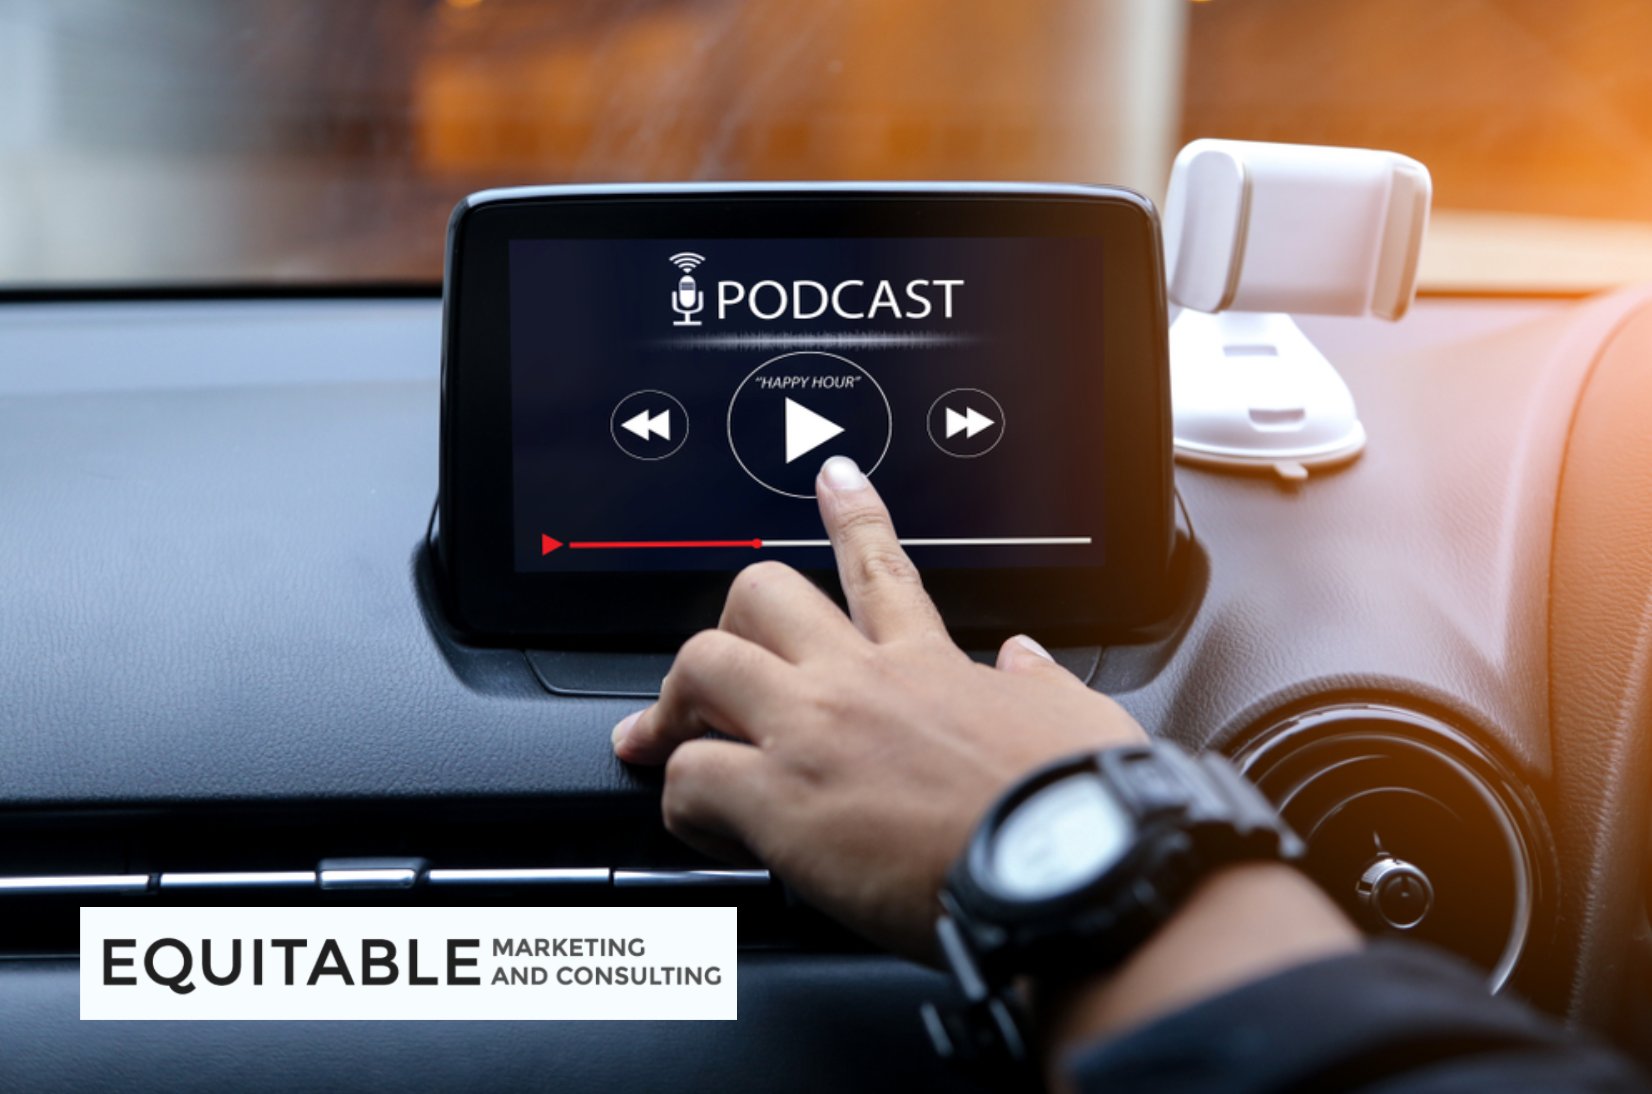 Top digital marketing podcasts shared by Equitable Marketing.